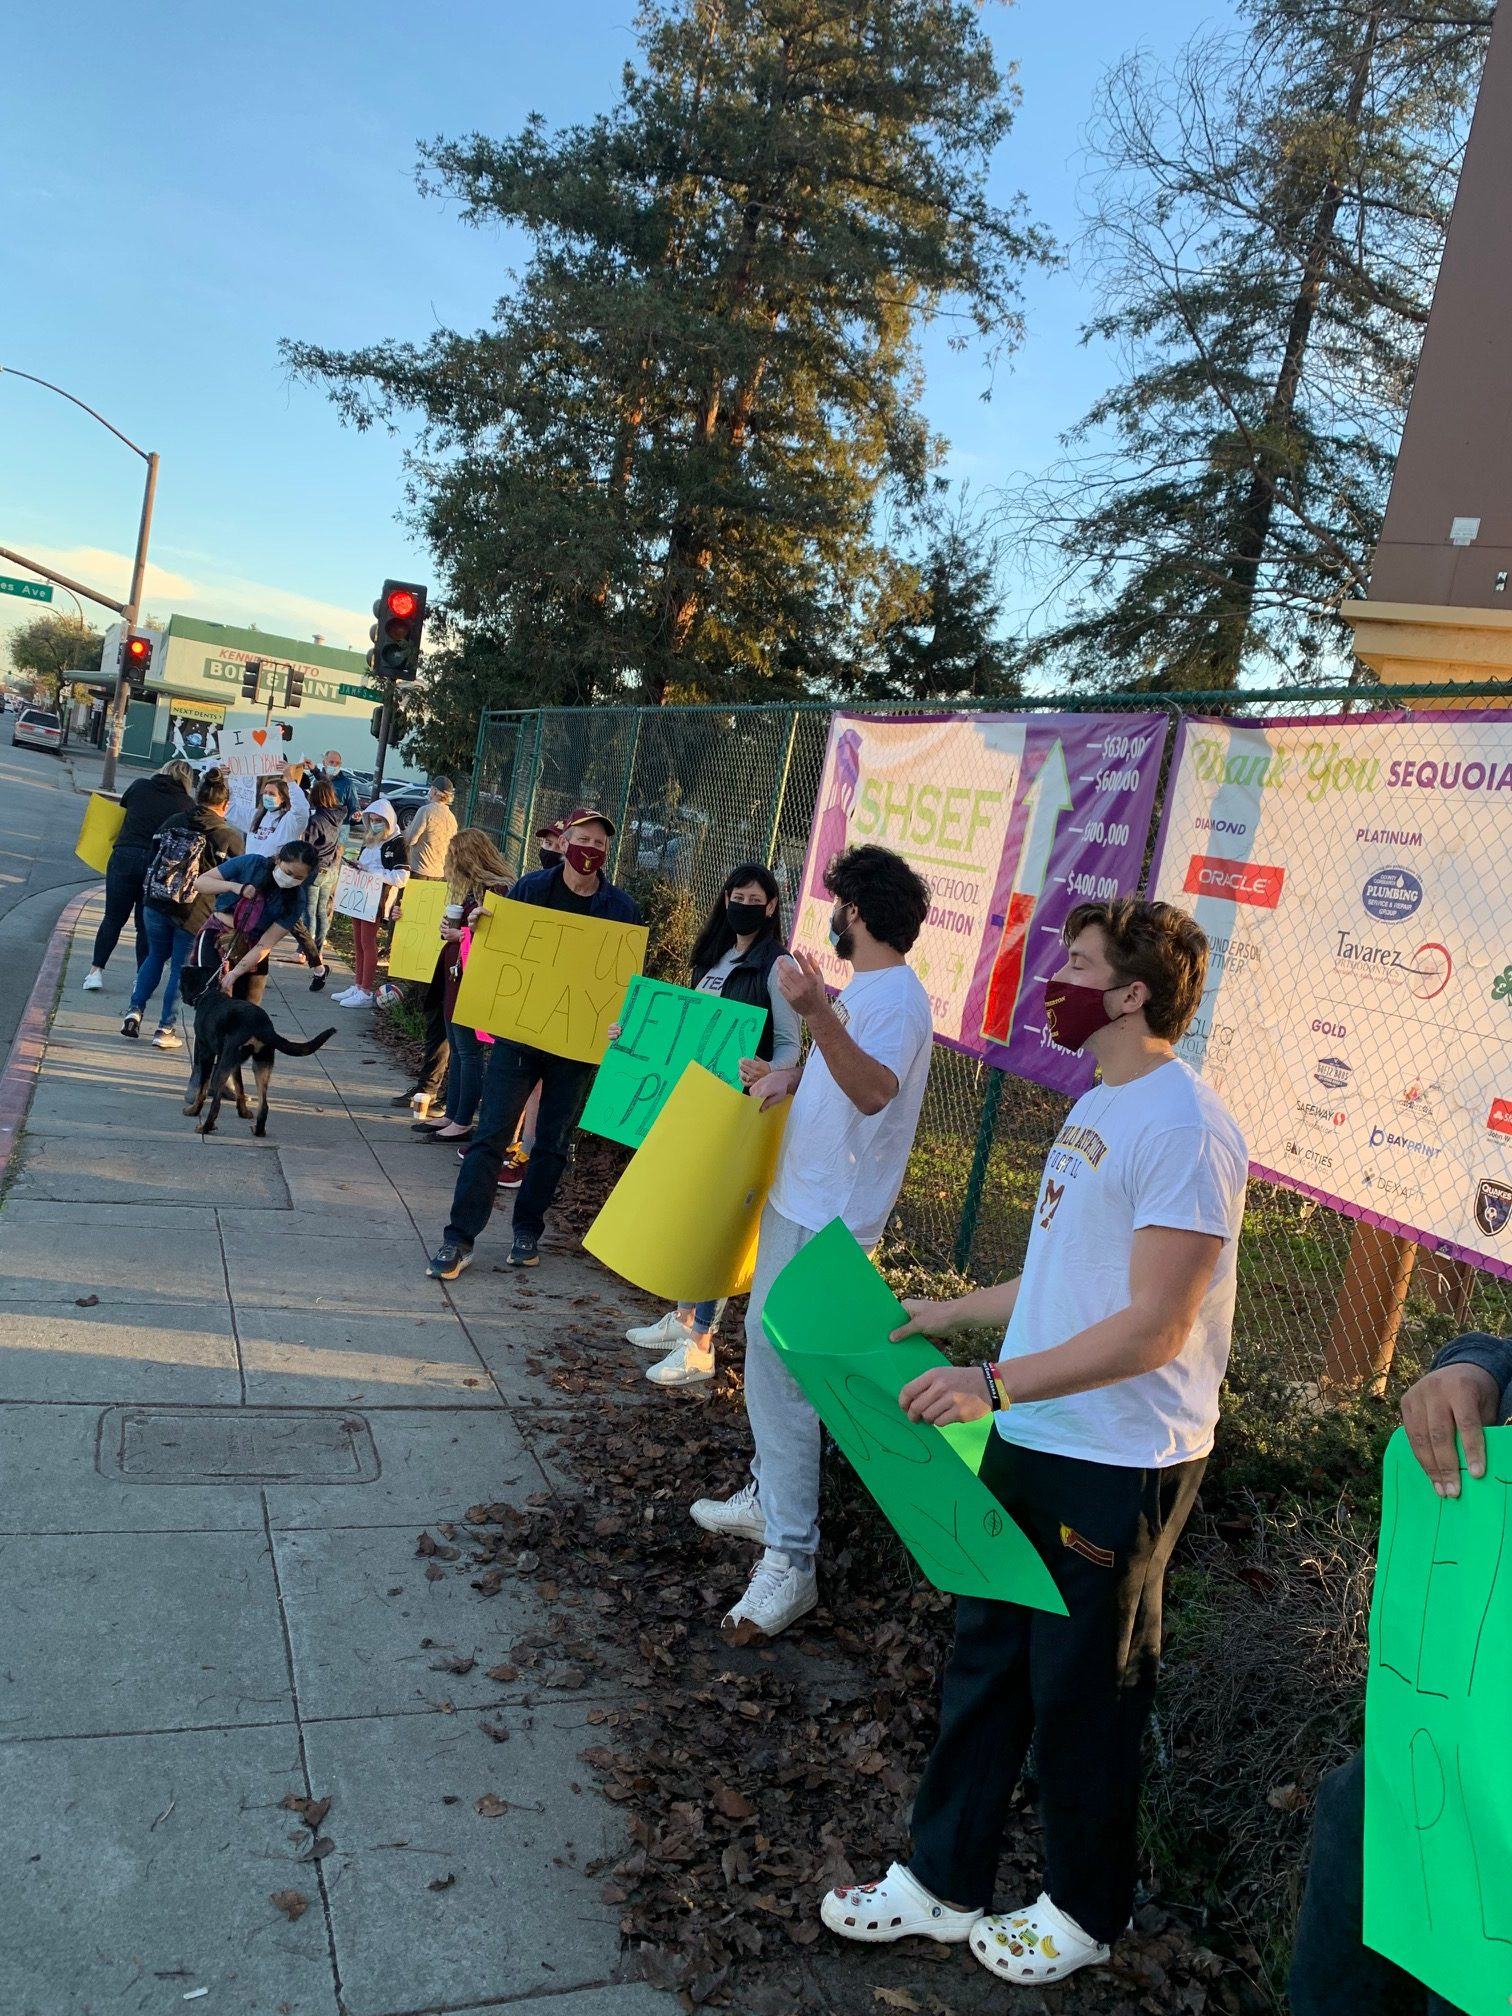 Let Them Play Protest at Sequoia HS Joins 100 Across State